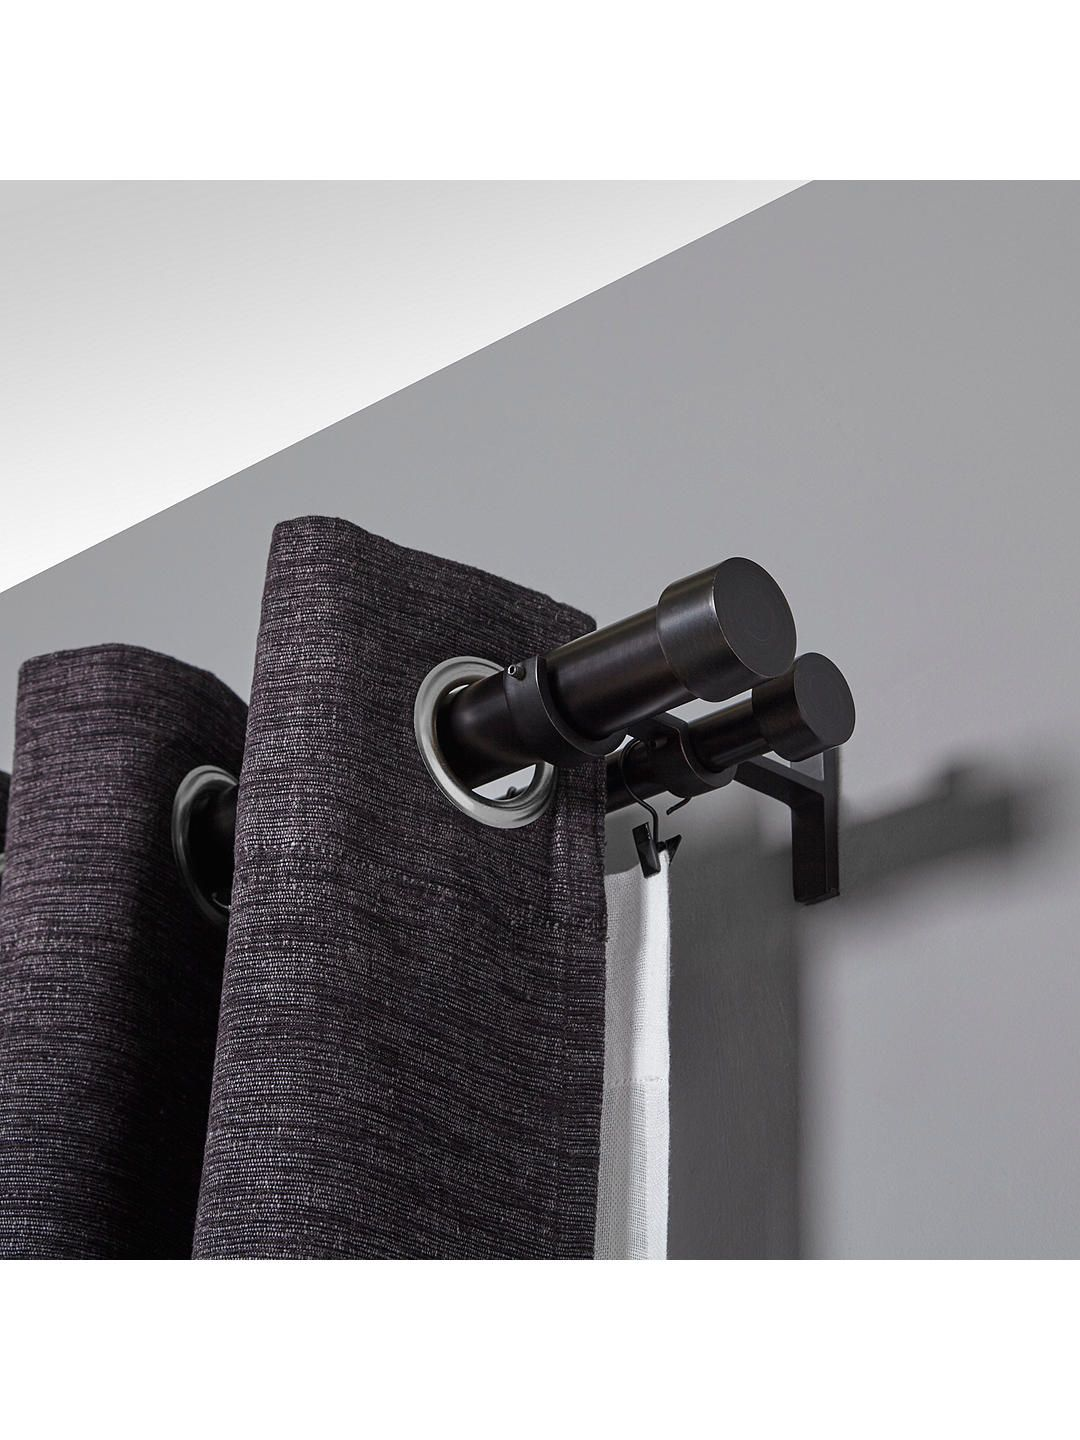 Buyumbra Adjustable Double Curtain Pole Kit Black Dia 19 32mm